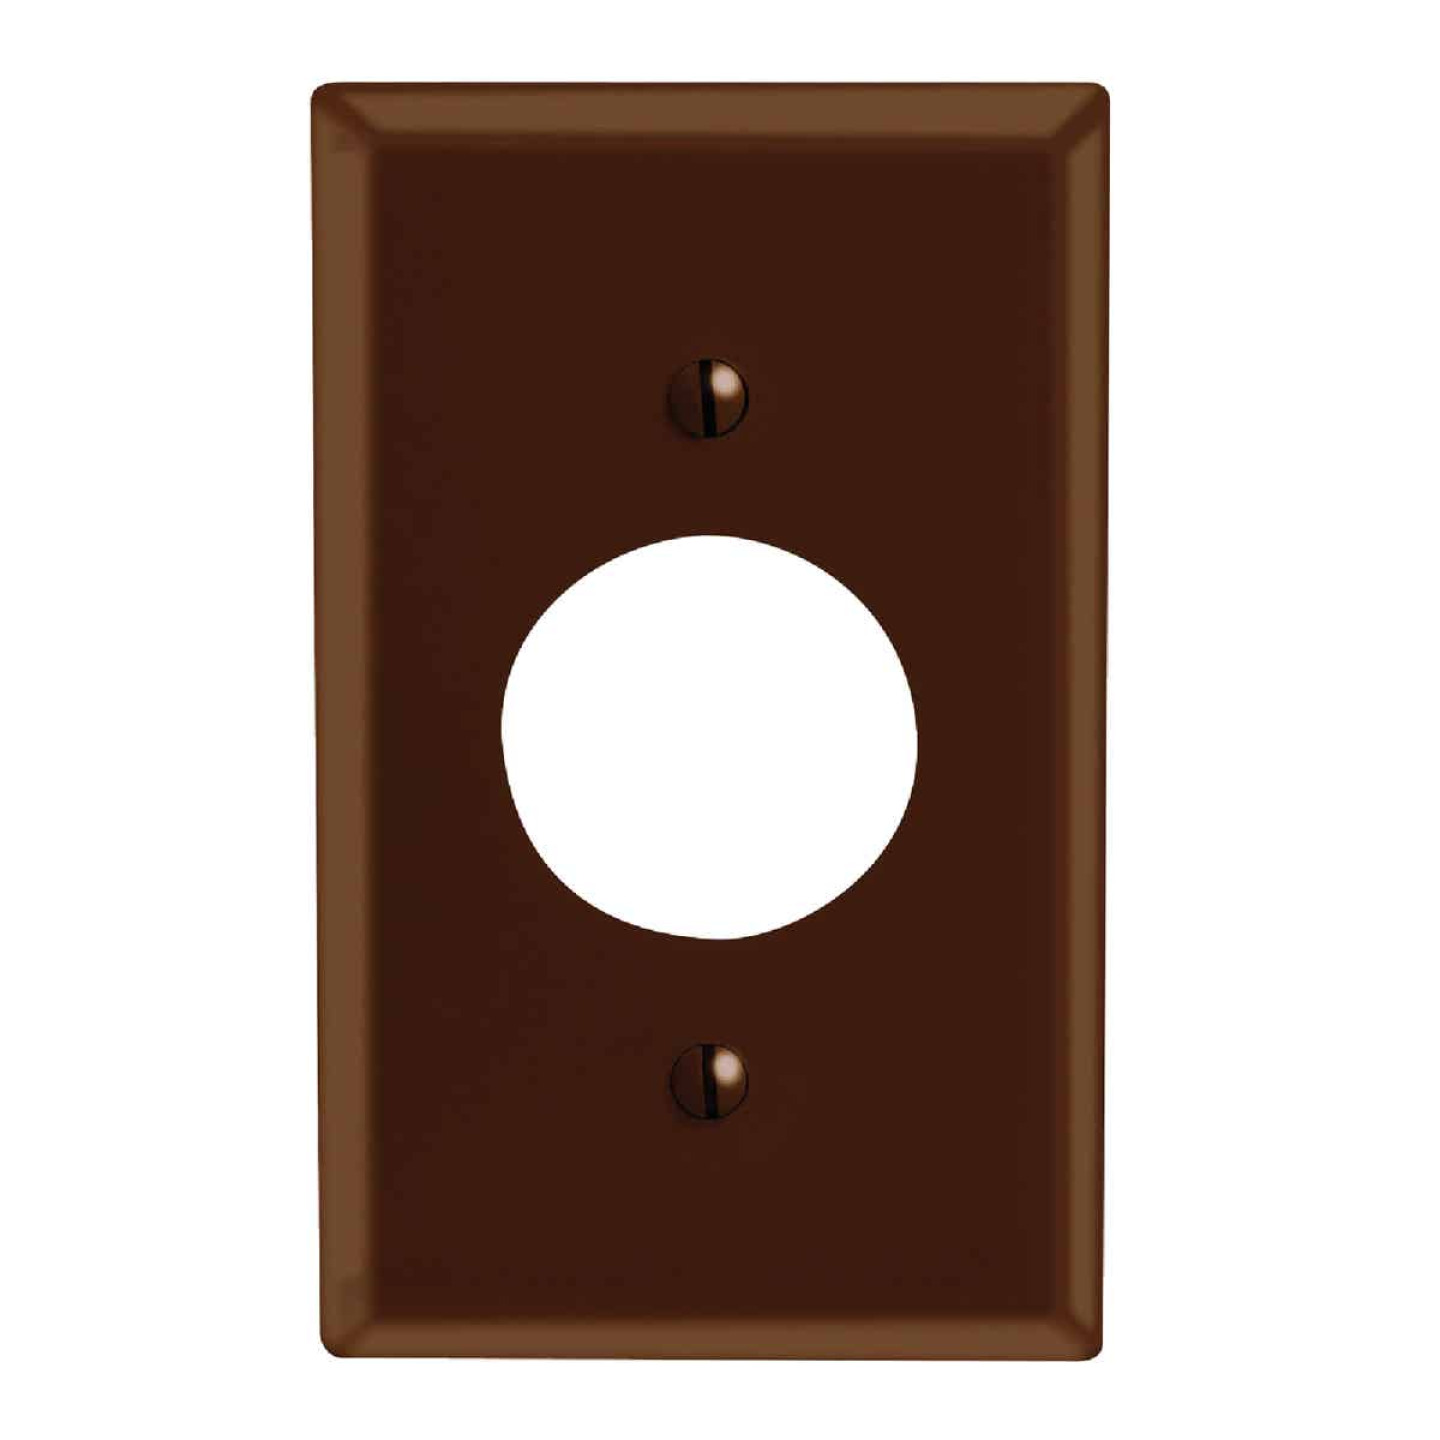 Leviton 1-Gang Smooth Plastic Single Outlet Wall Plate, Brown Image 1